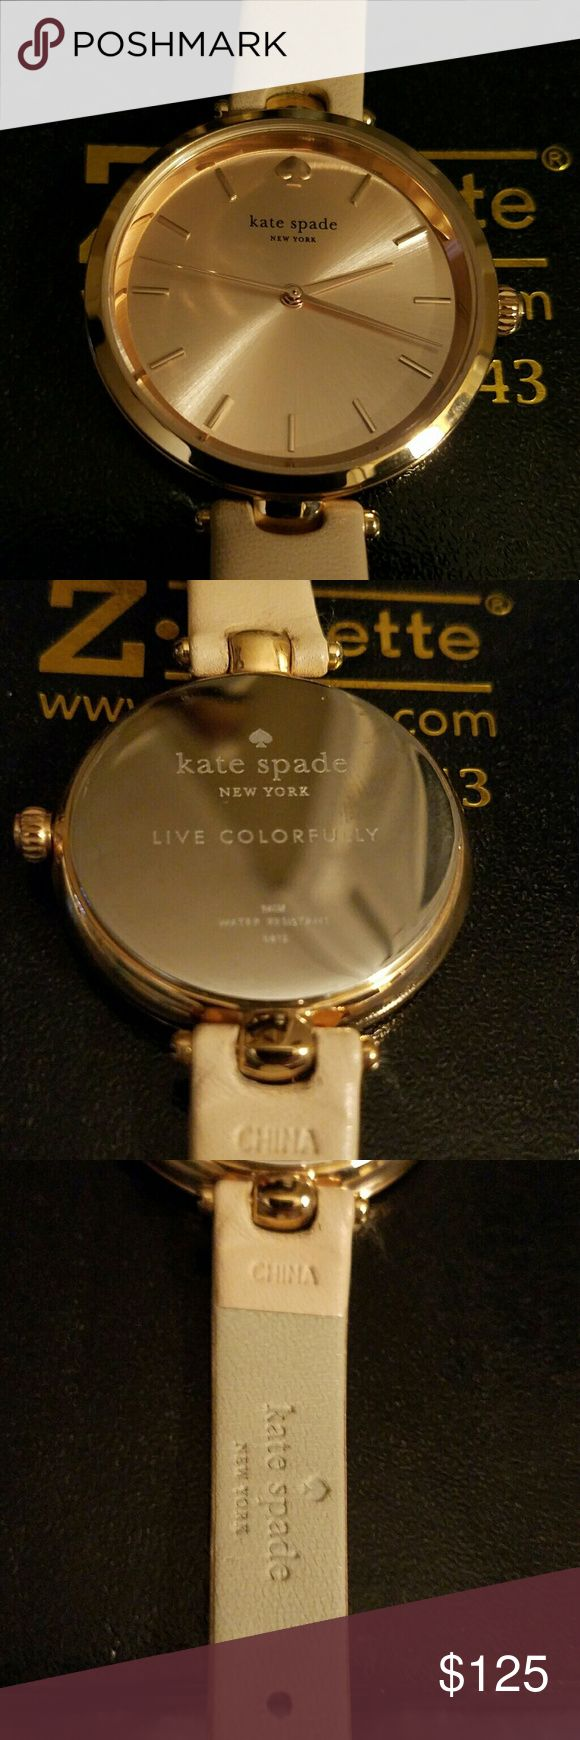 Kate Spade Genuine Leather Rose Gold Watch This watch is absolutely beautiful. It has a rose gold face with a light pink leather band. It has been worn a few times, but us still in perfect condition. kate spade Accessories